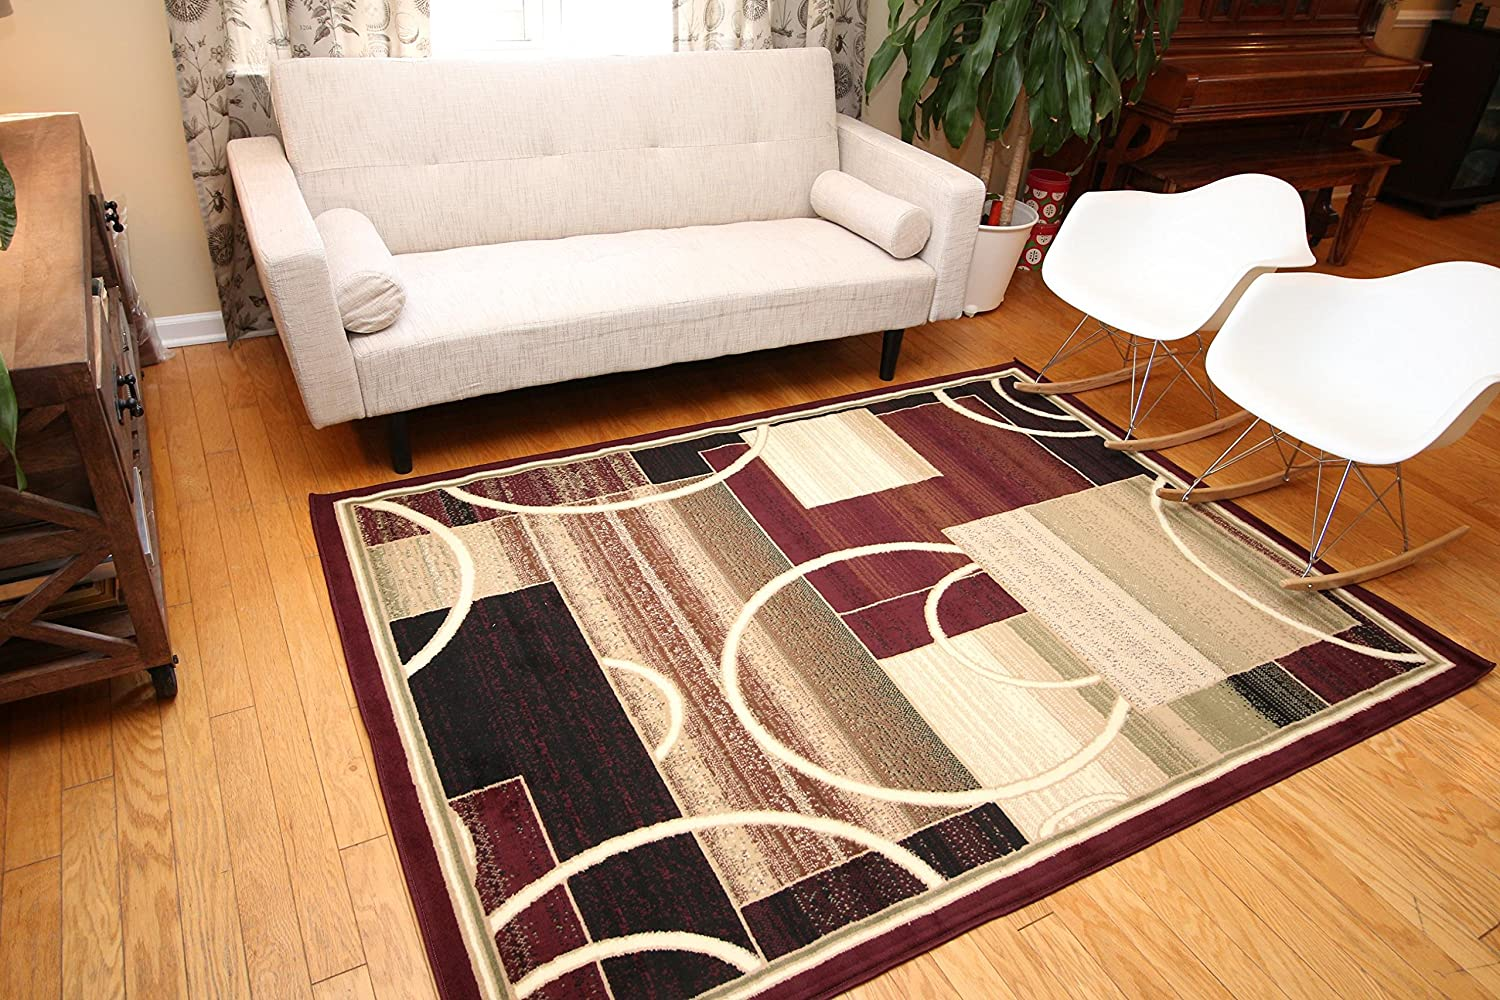 Amazon com generations contemporary modern square and circles area rug 9 x 12 red burgundy kitchen dining